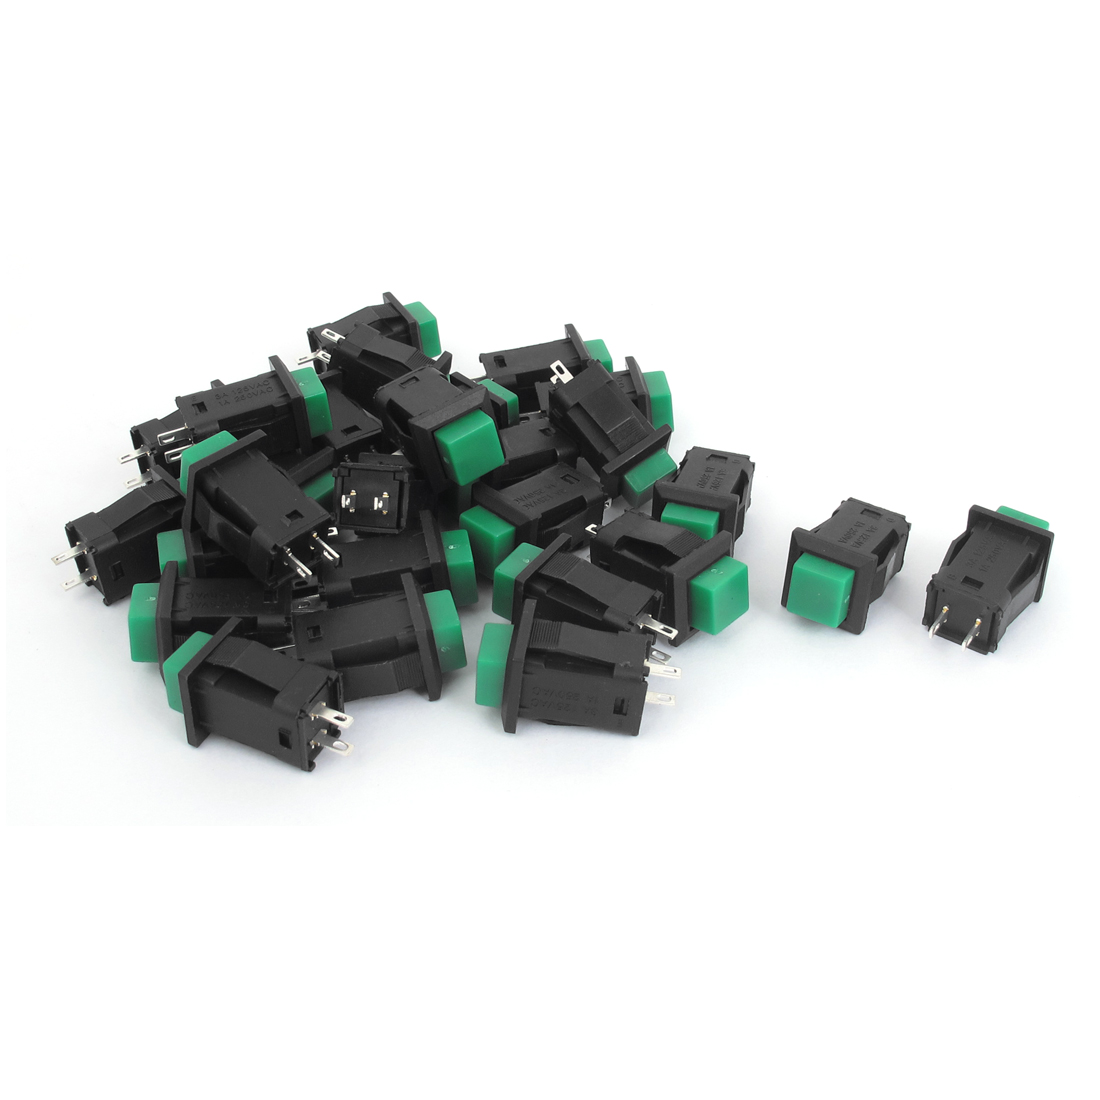 AC 125V 3A AC 250V 1A SPST Momentary Push Button Switch Black Green 50Pcs